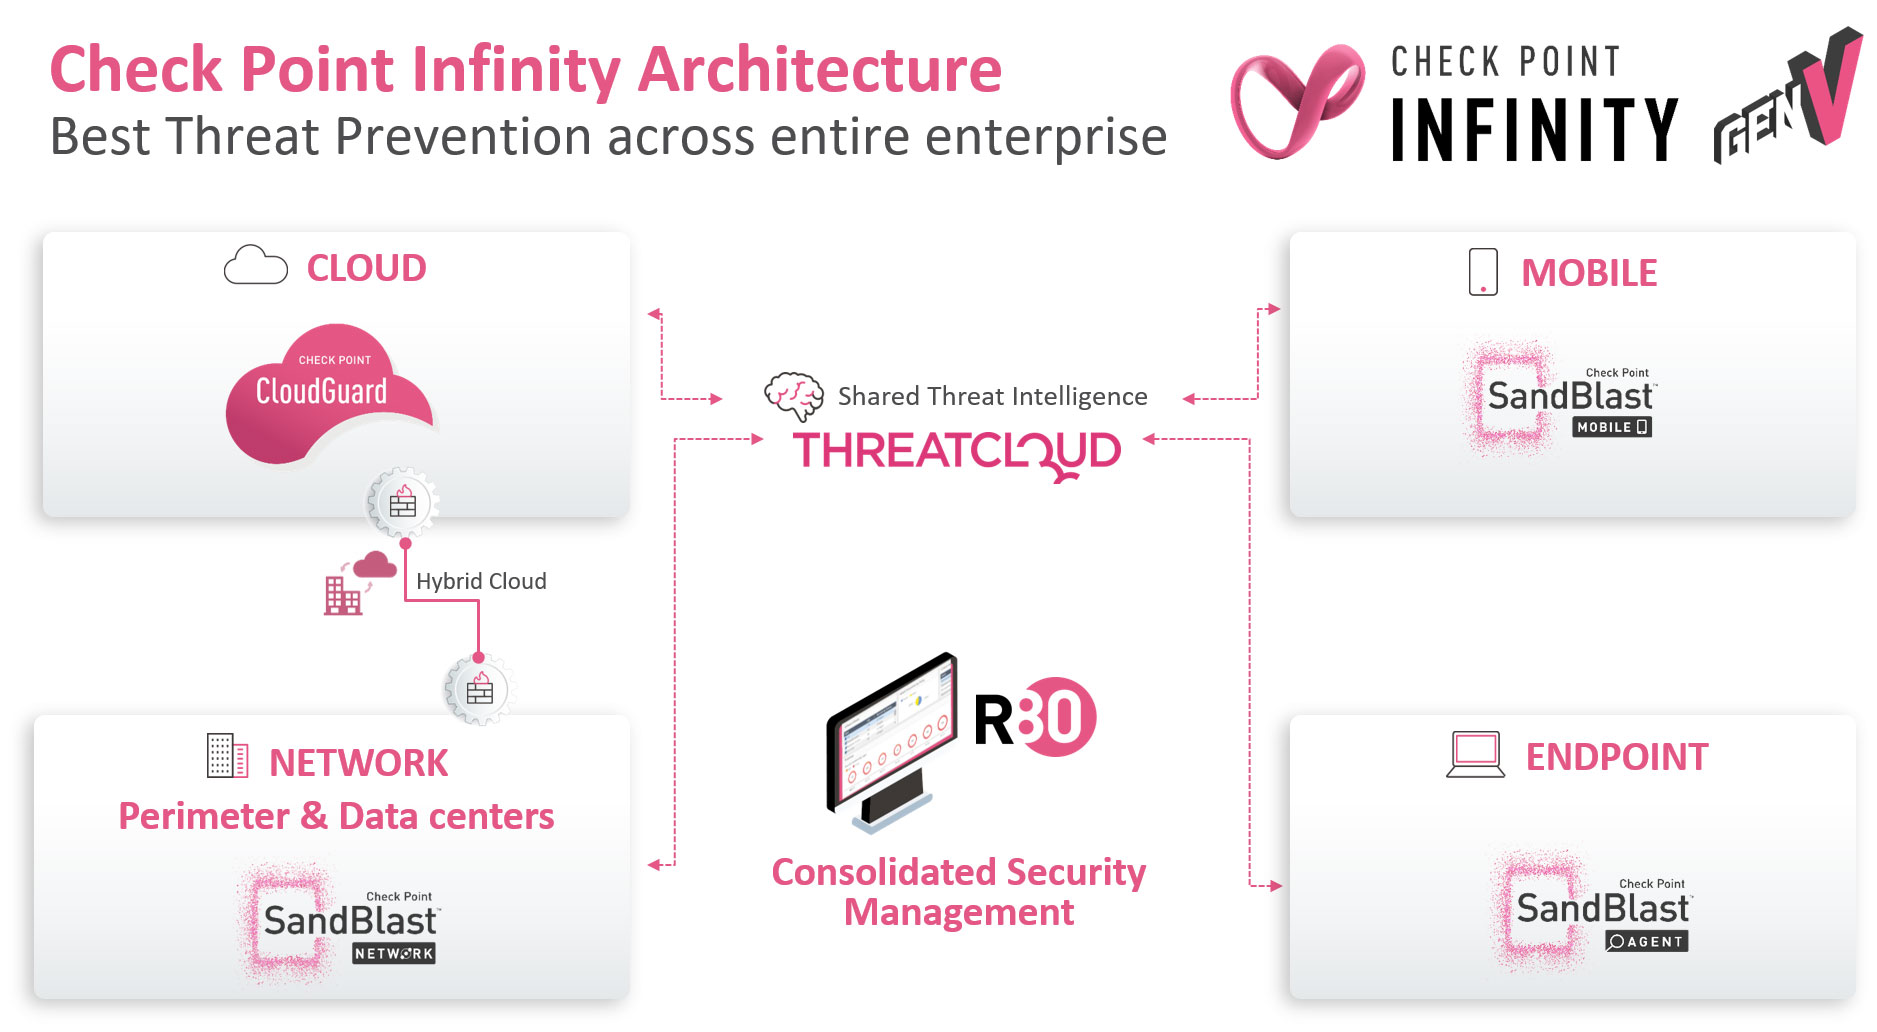 Infinity Architecture Network Cloud Mobile Endpoint